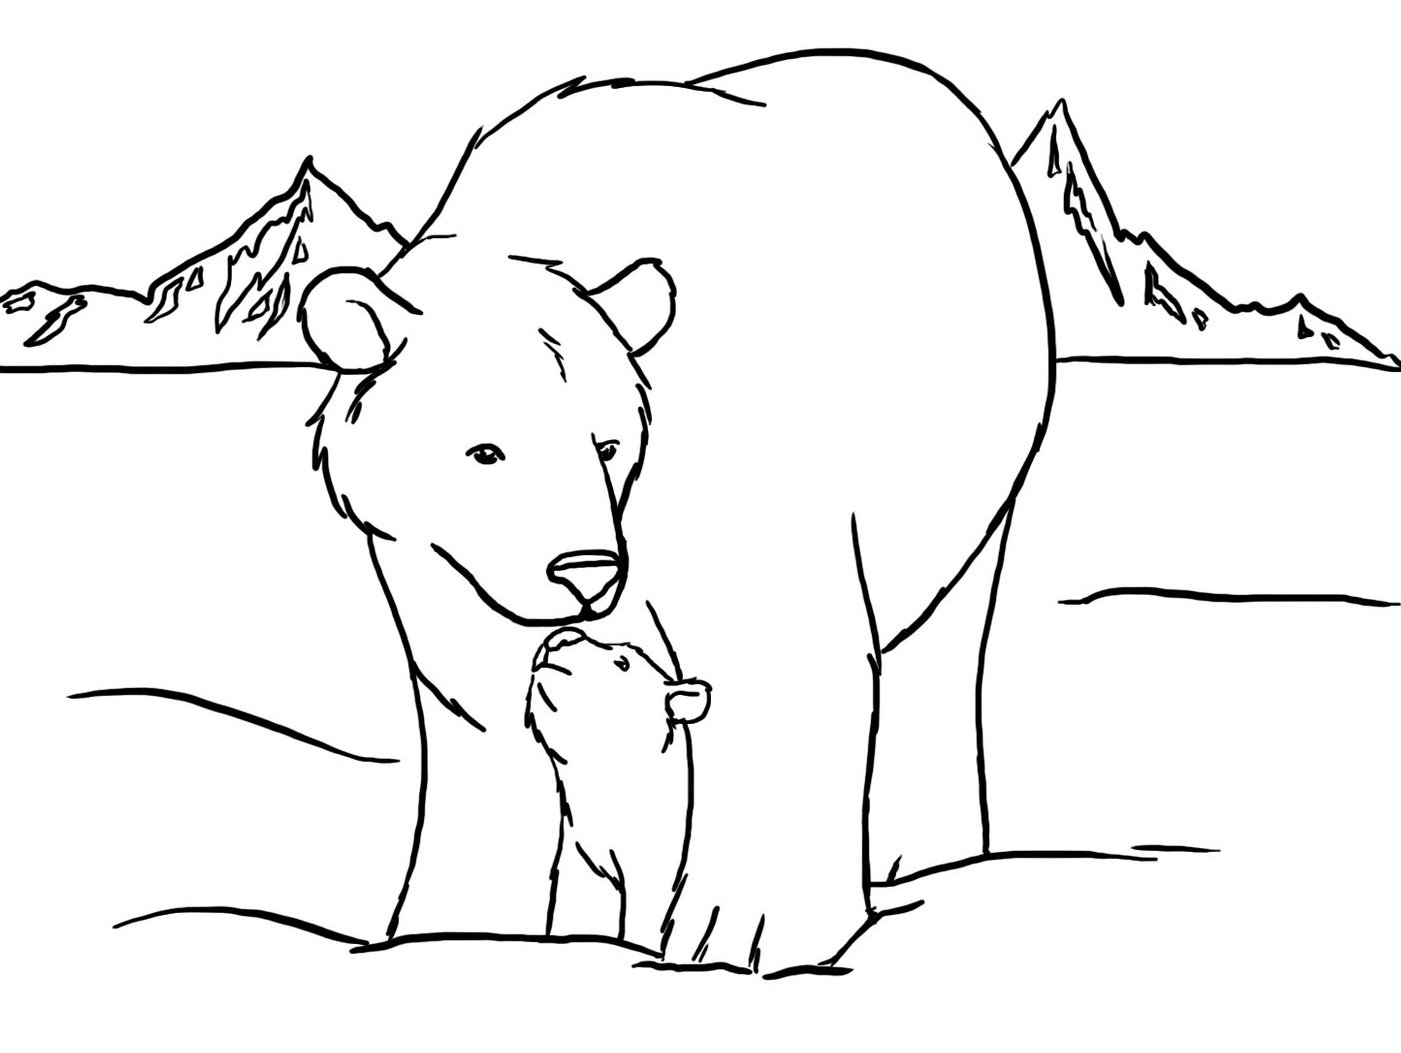 coloring pages of bears to print print color craft activities for kids and adults part 4 print pages to coloring of bears